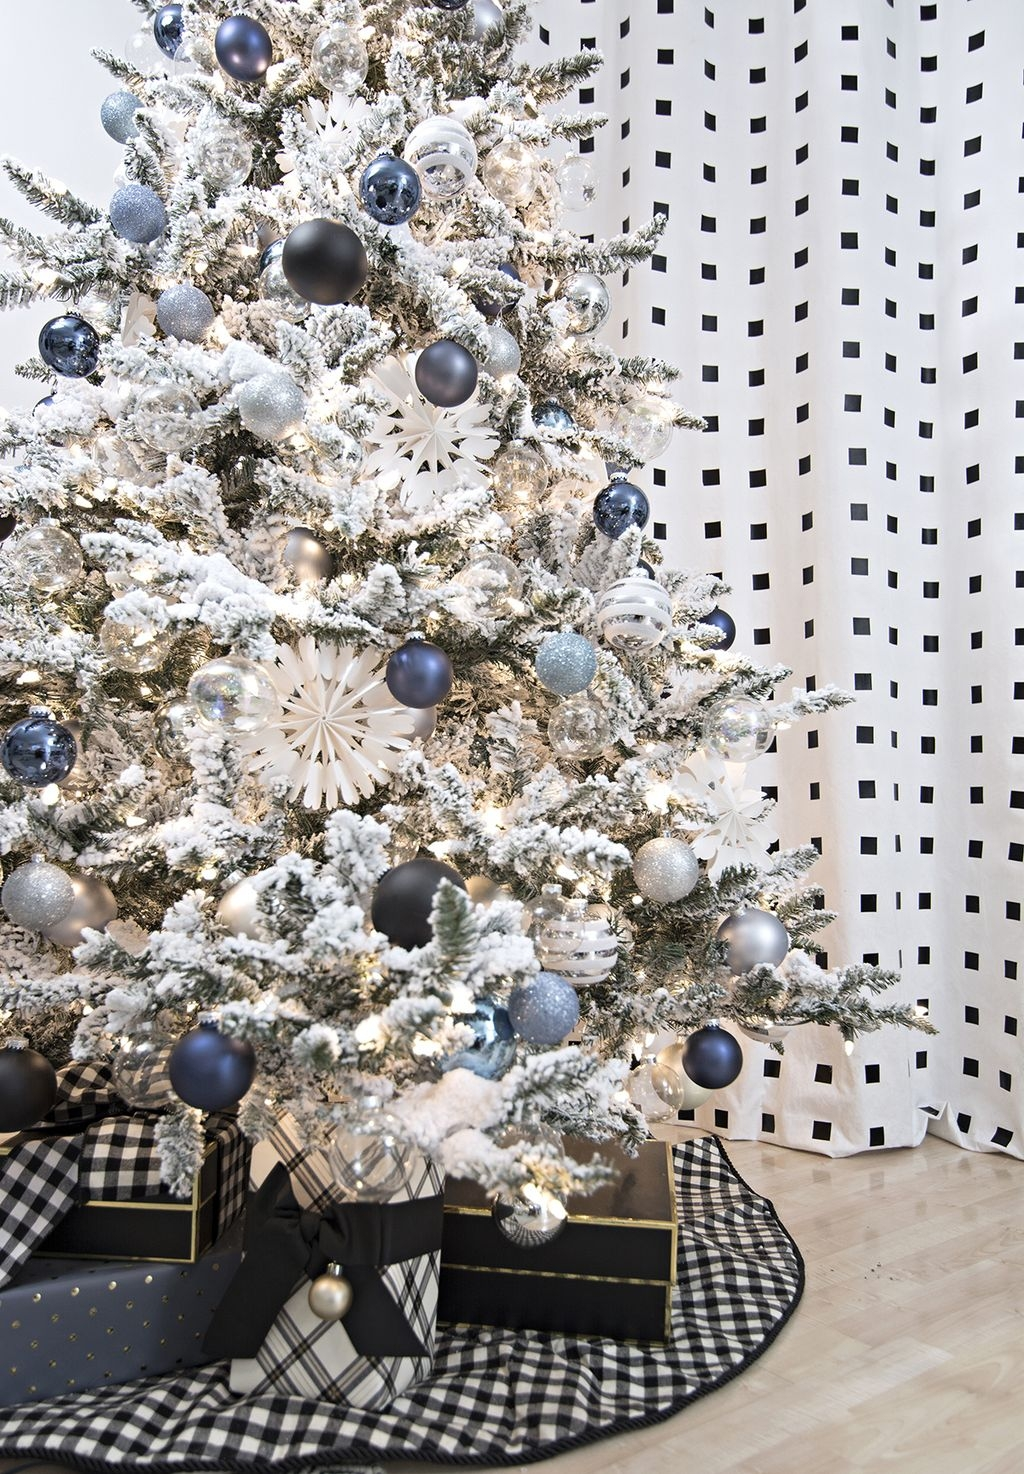 Amazing Silver And Blue Christmas Decoration Ideas For Christmas And New Year19